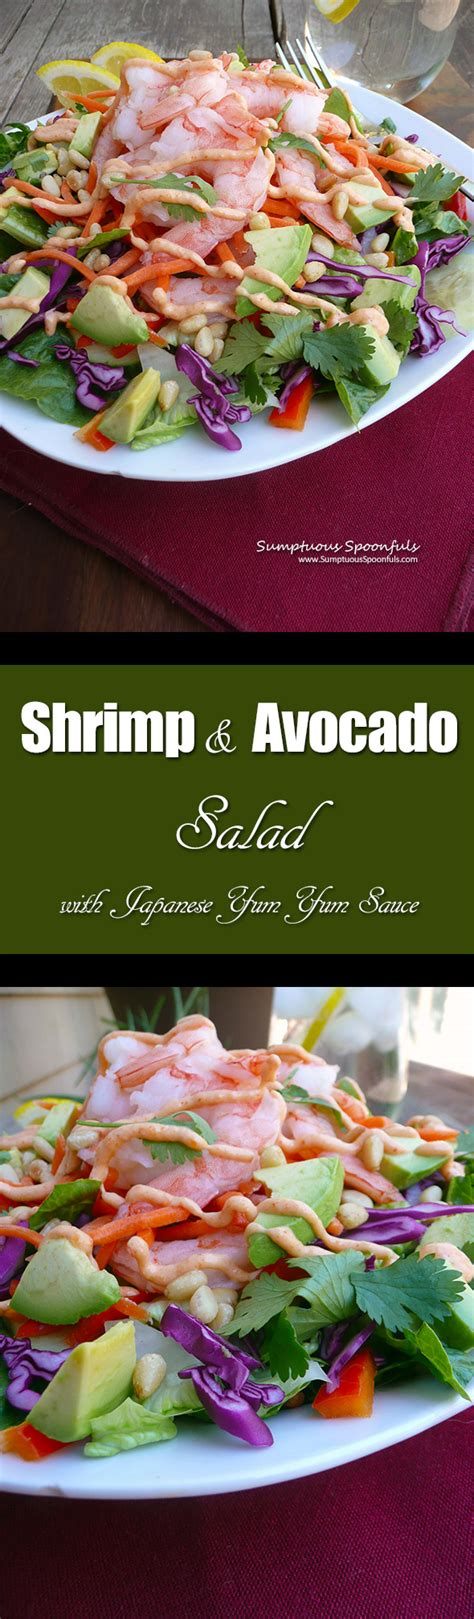 shrimp avocado salad w japanese yum yum sauce recipe dinner salad recipes shrimp avocado